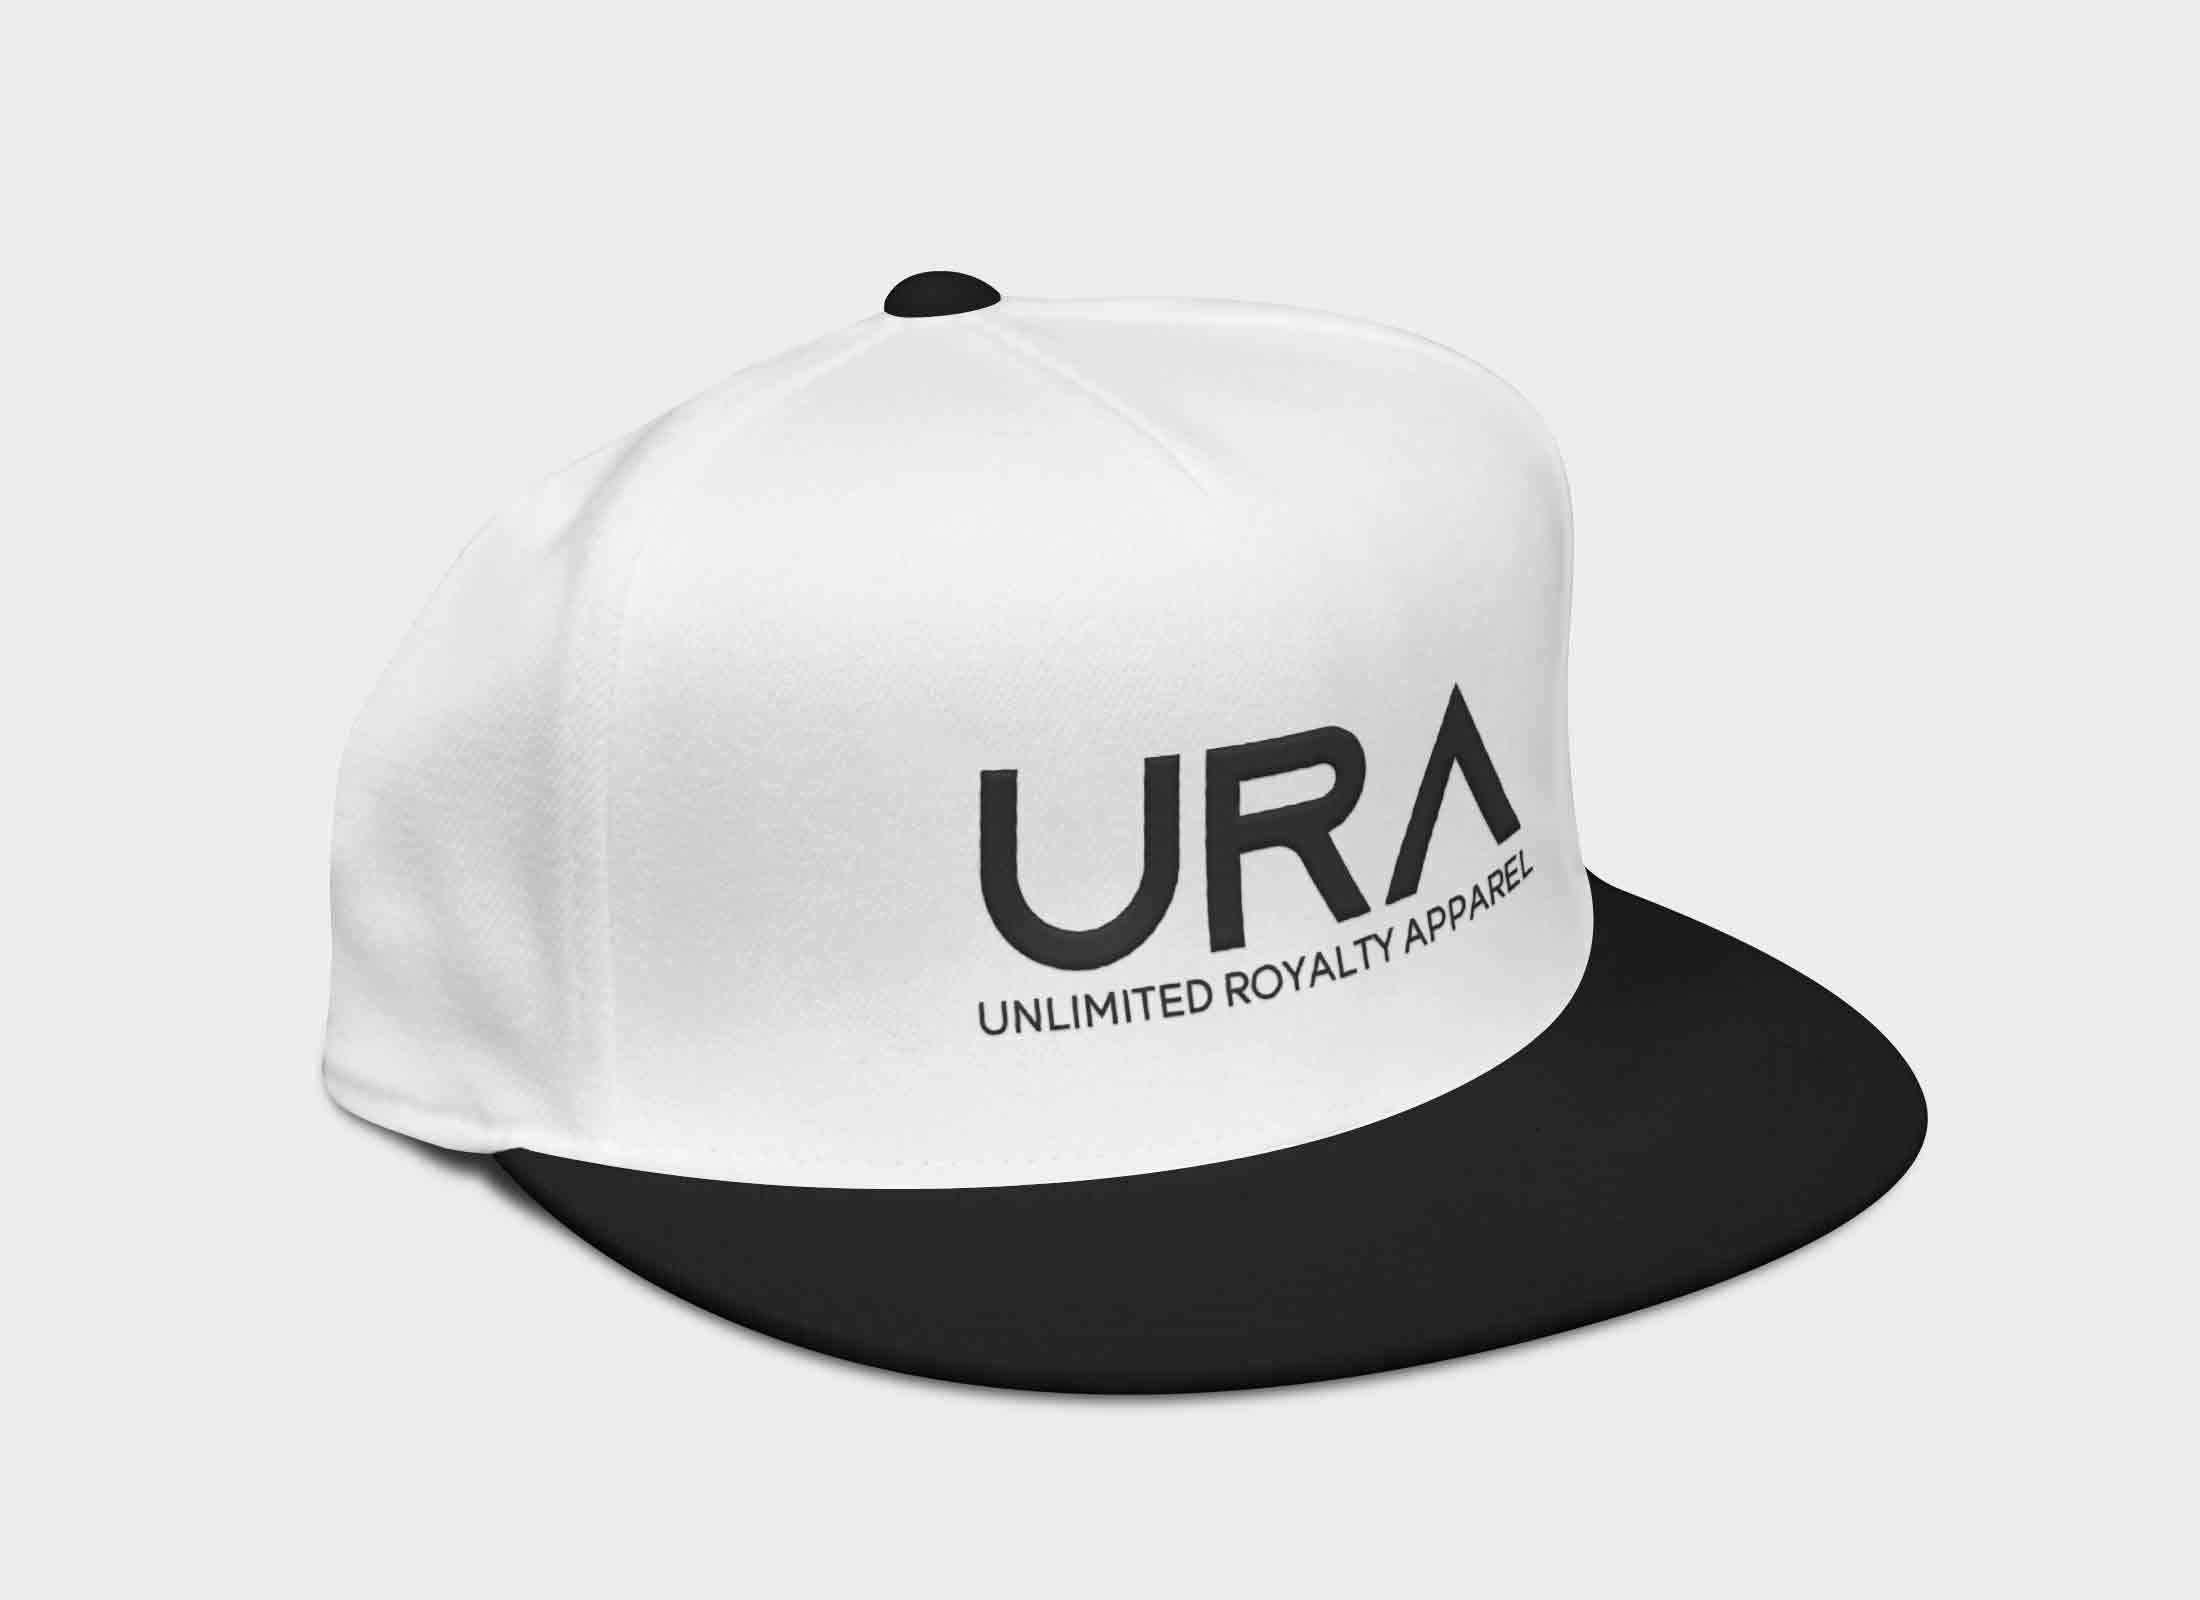 URA Snapback - Unlimited Royalty Apparel